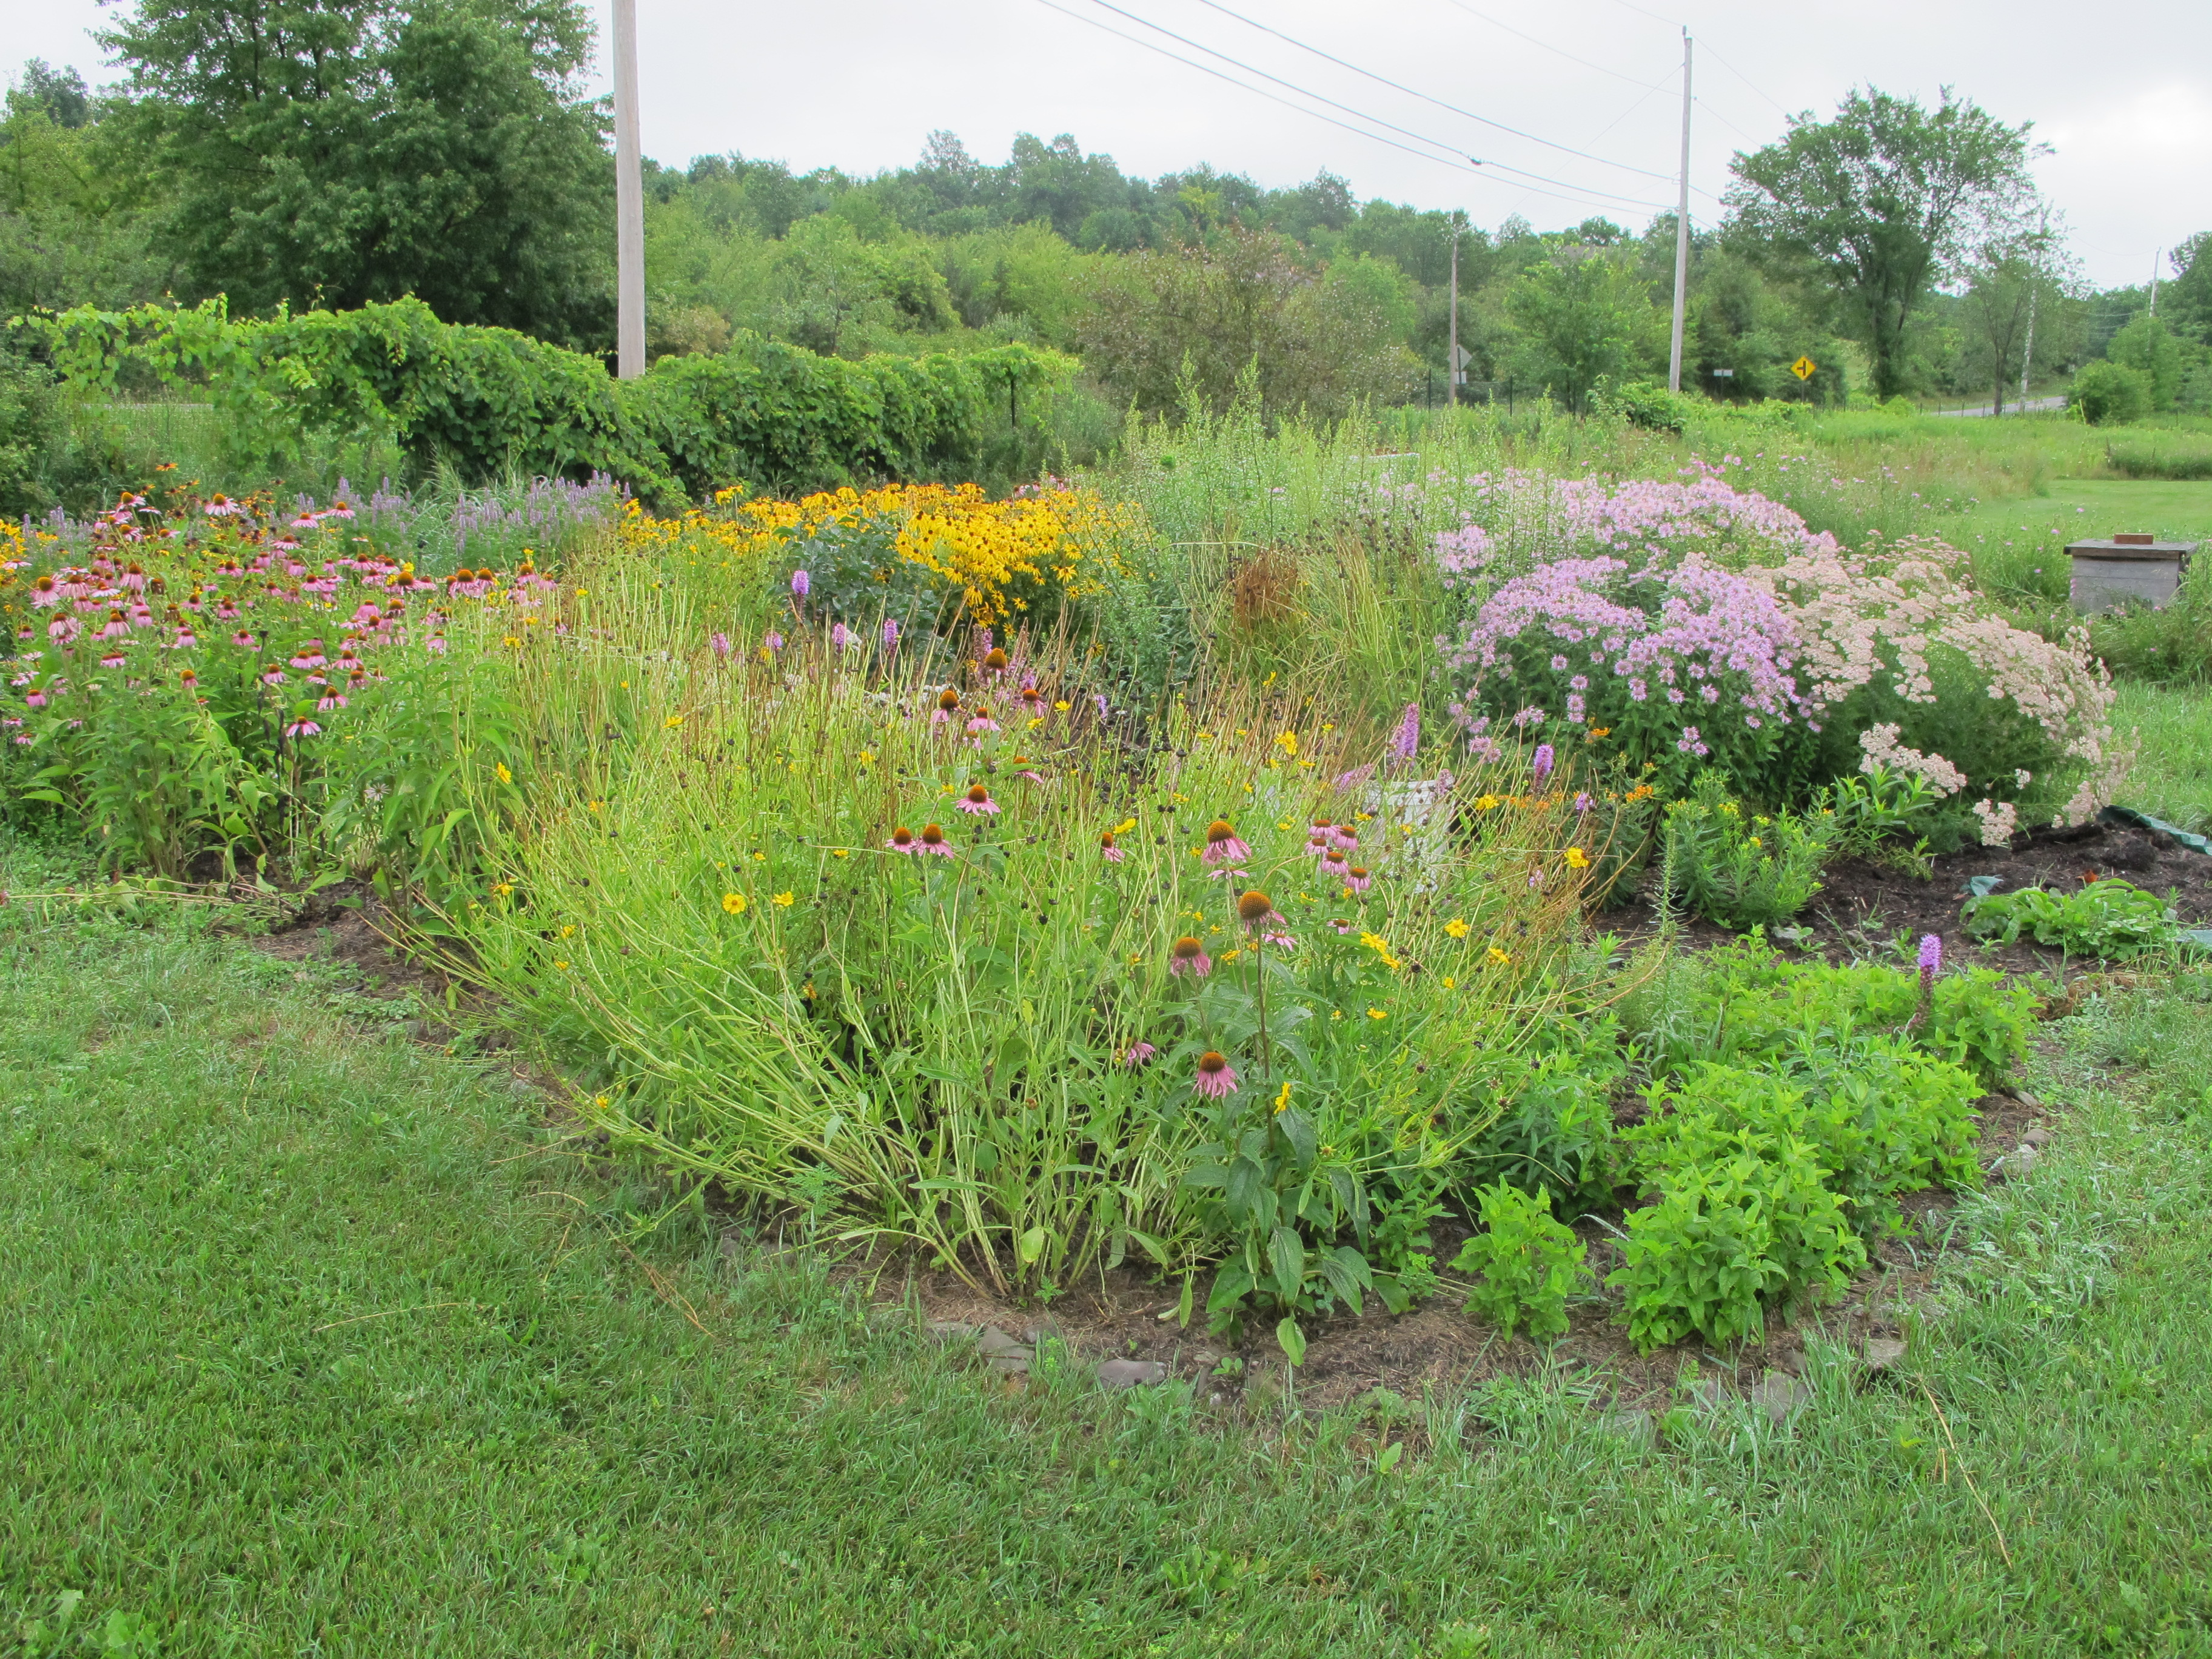 view of the entire pollinator patch full of colorful flowers